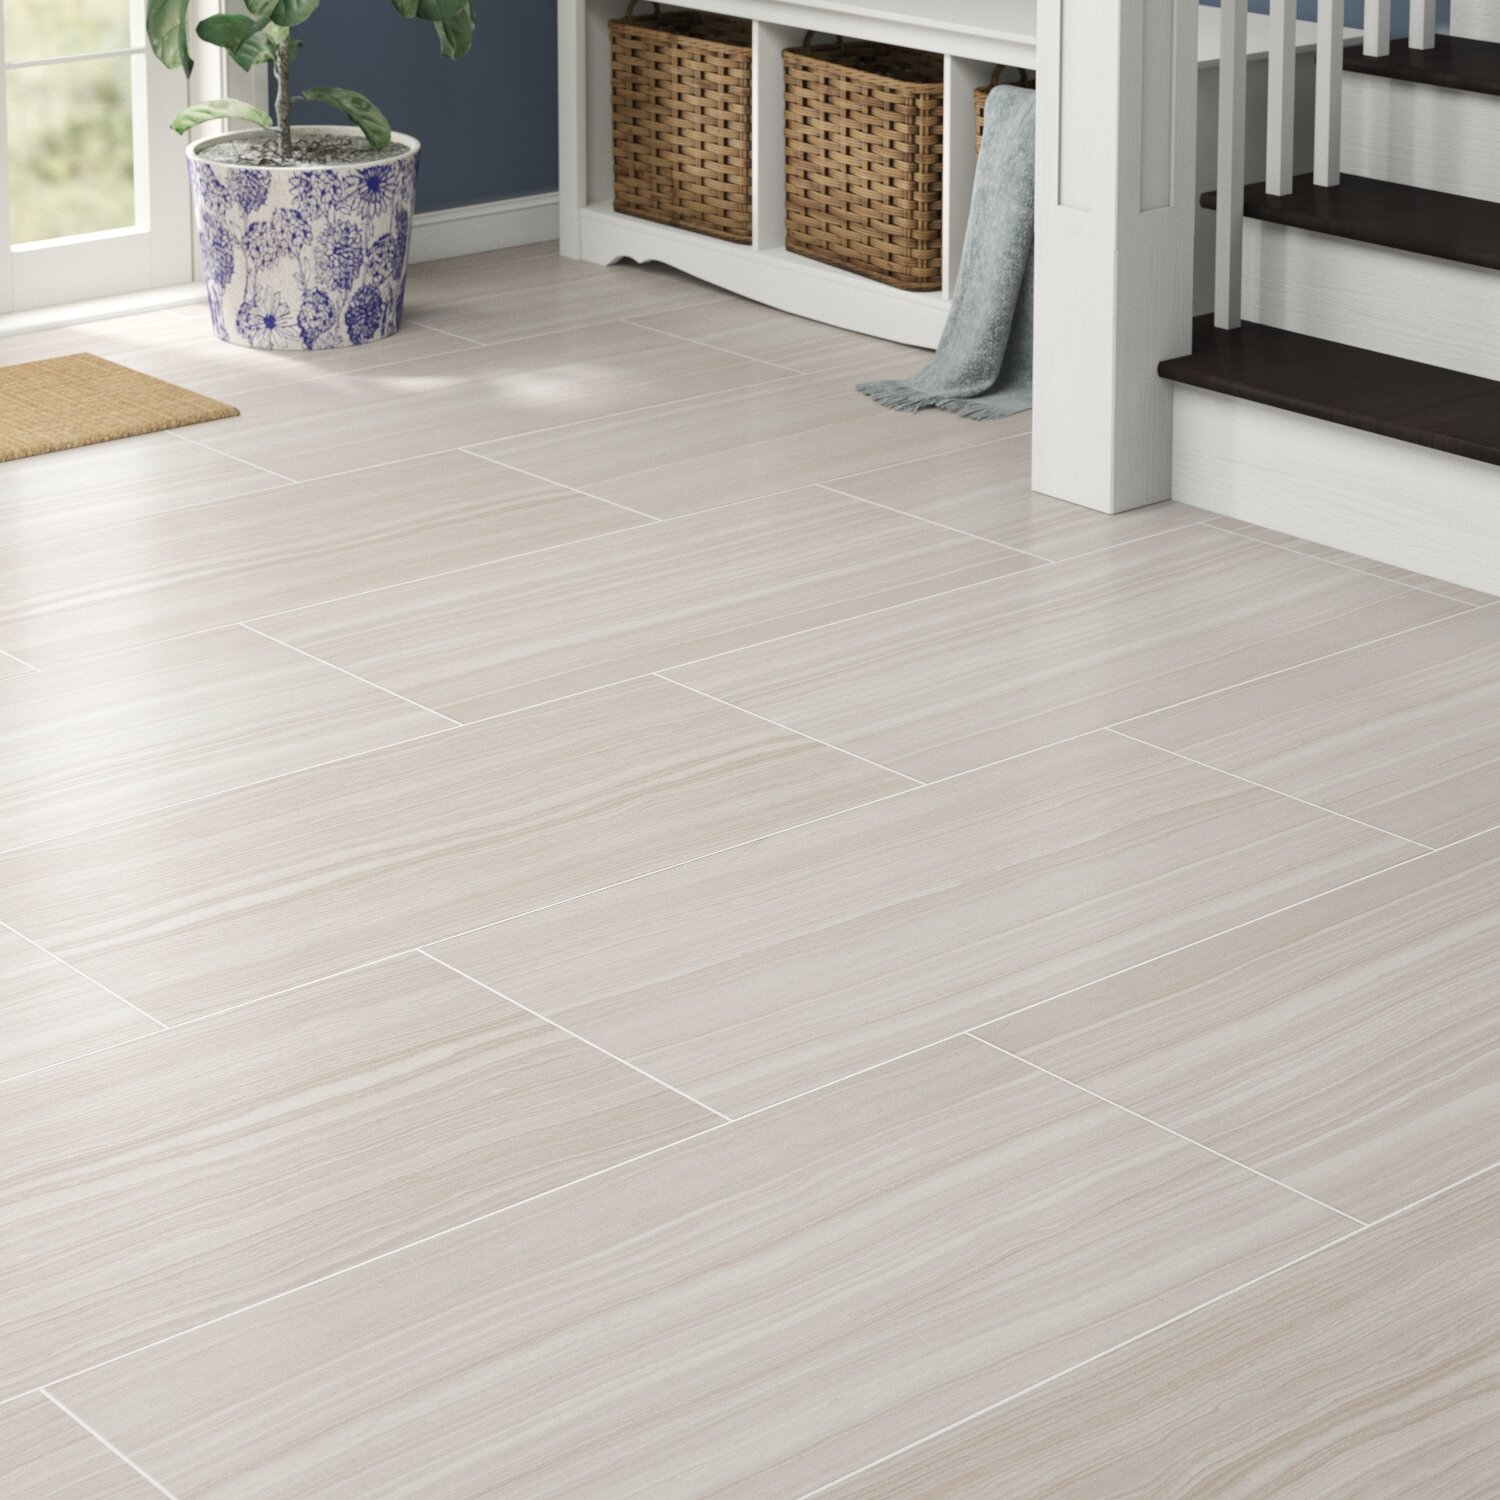 Porcelain Field Tile In Azul